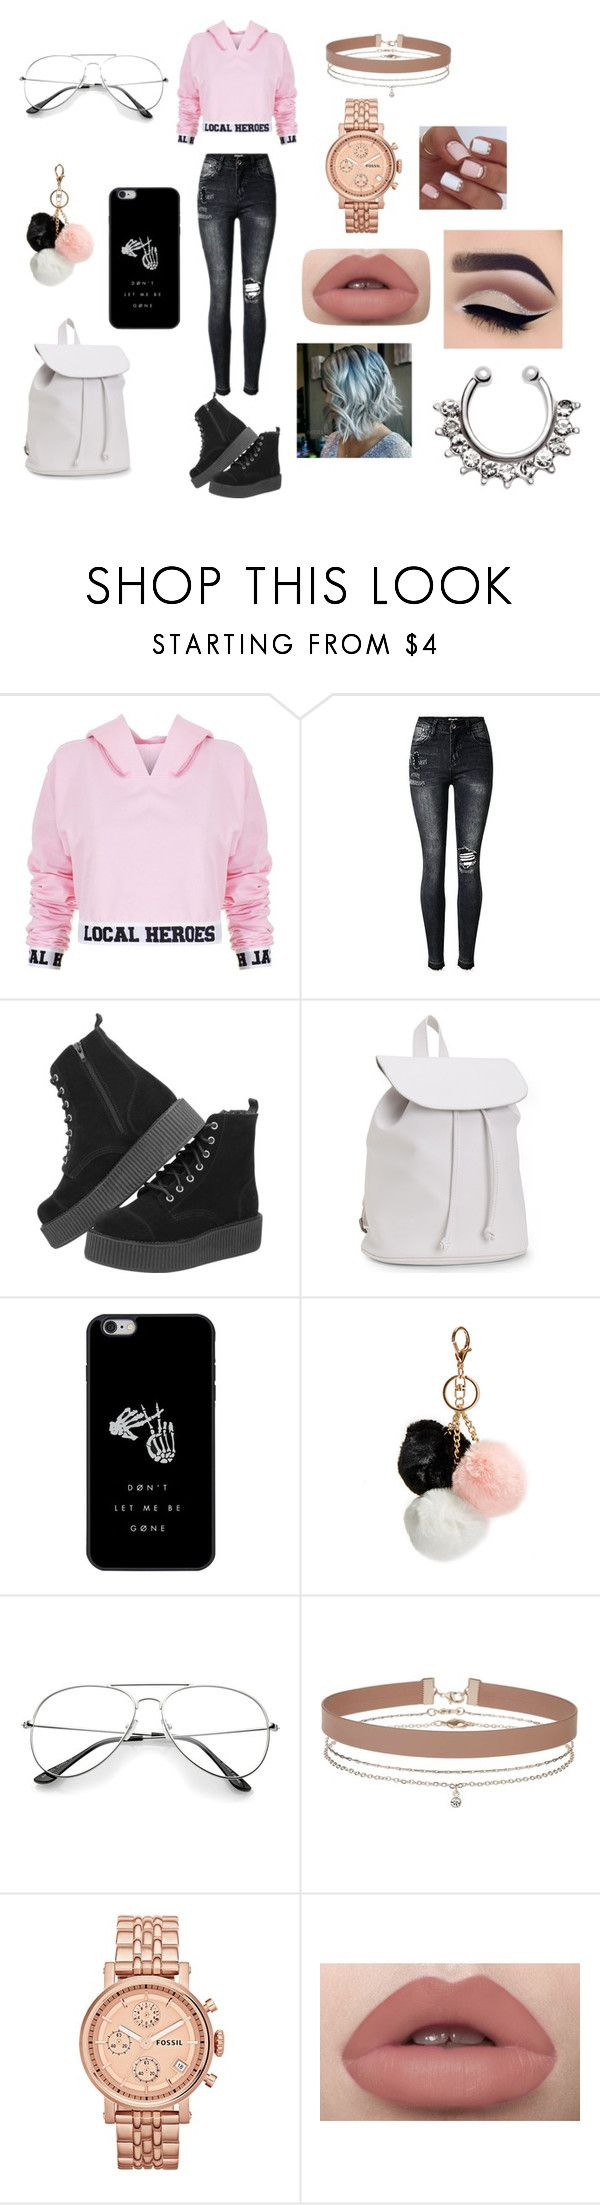 Hoodie #6 by infinityisangel on Polyvore featuring Local Heroes, Aéropostale, FOSSIL, Miss Selfridge and GUESS